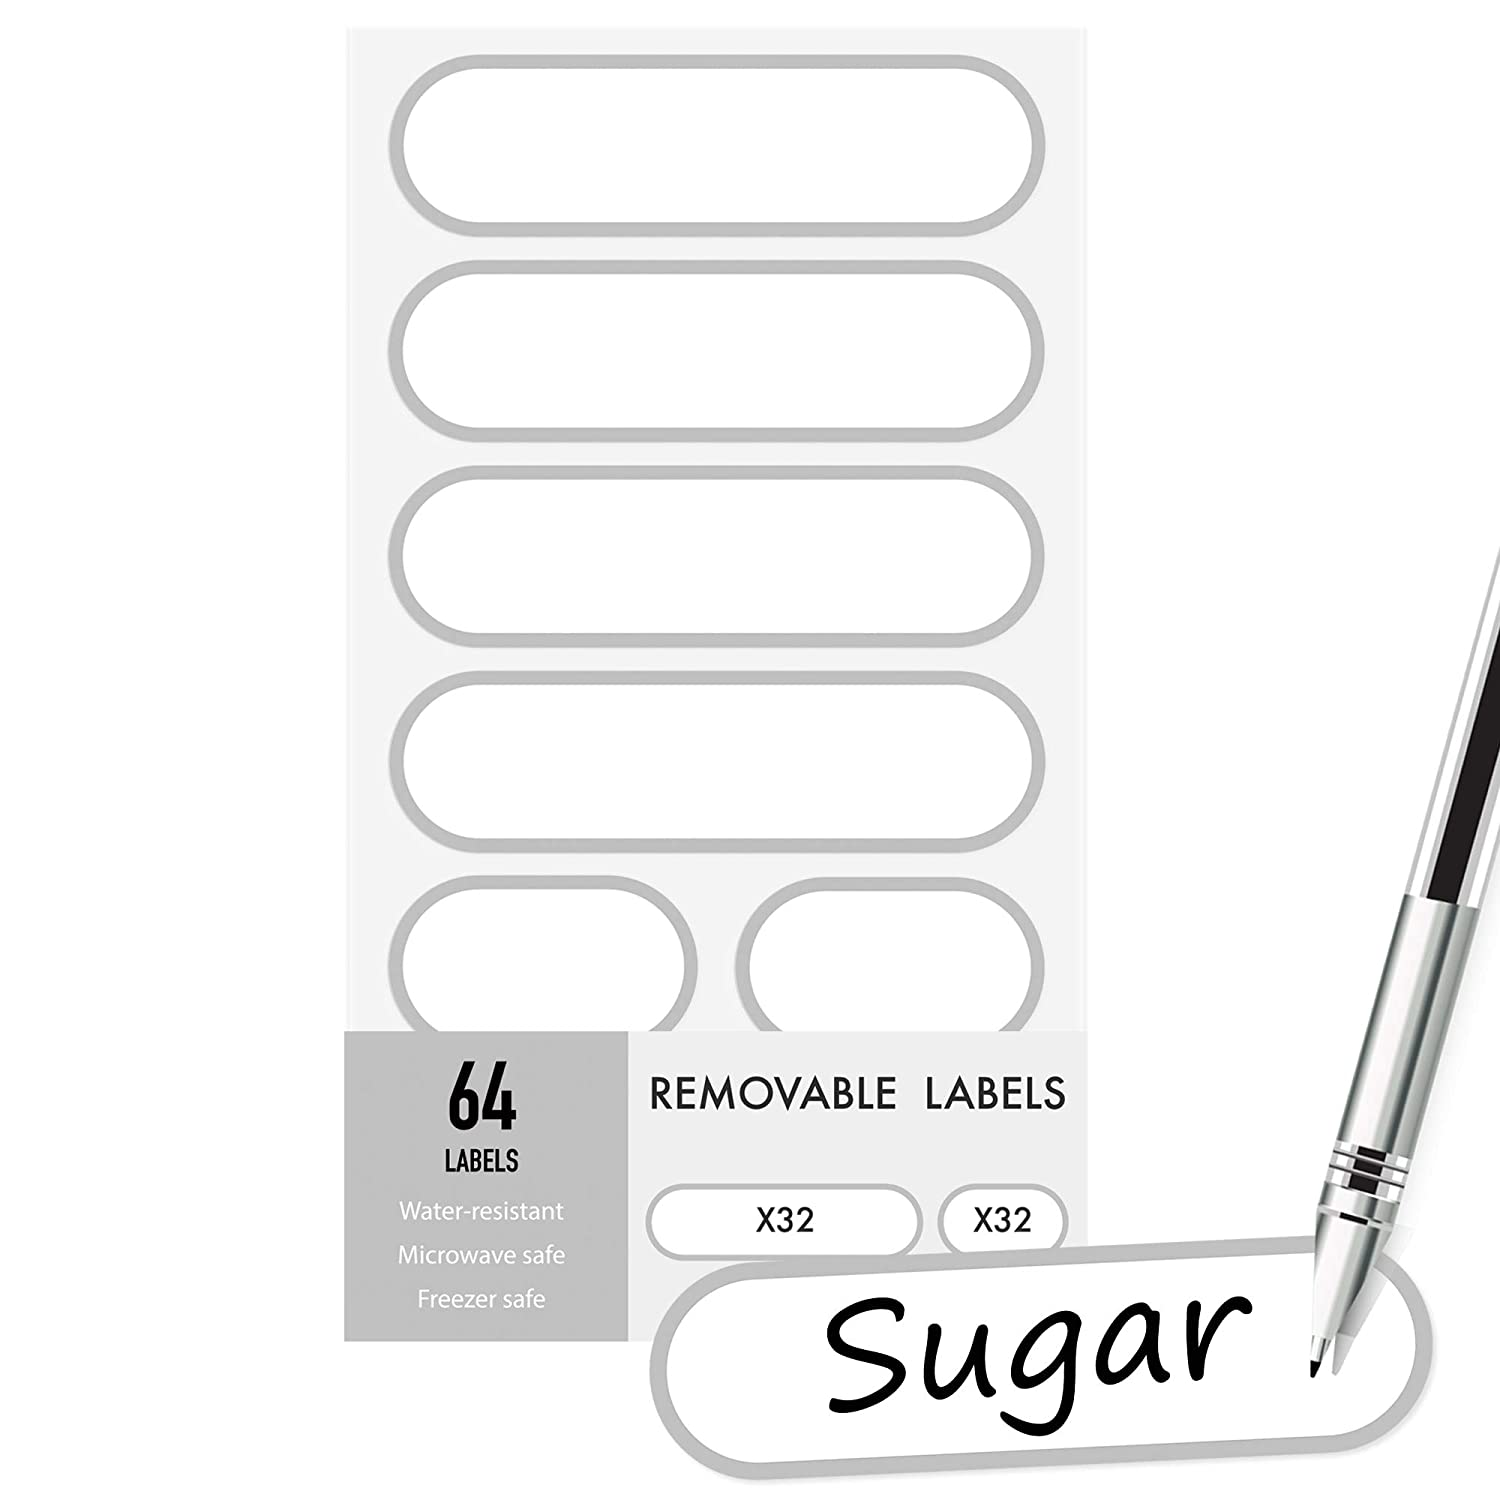 Removable Write-On Food Labels, Waterproof Kitchen Labels for POP Food Storage Containers and Home Organization, Pack of 64